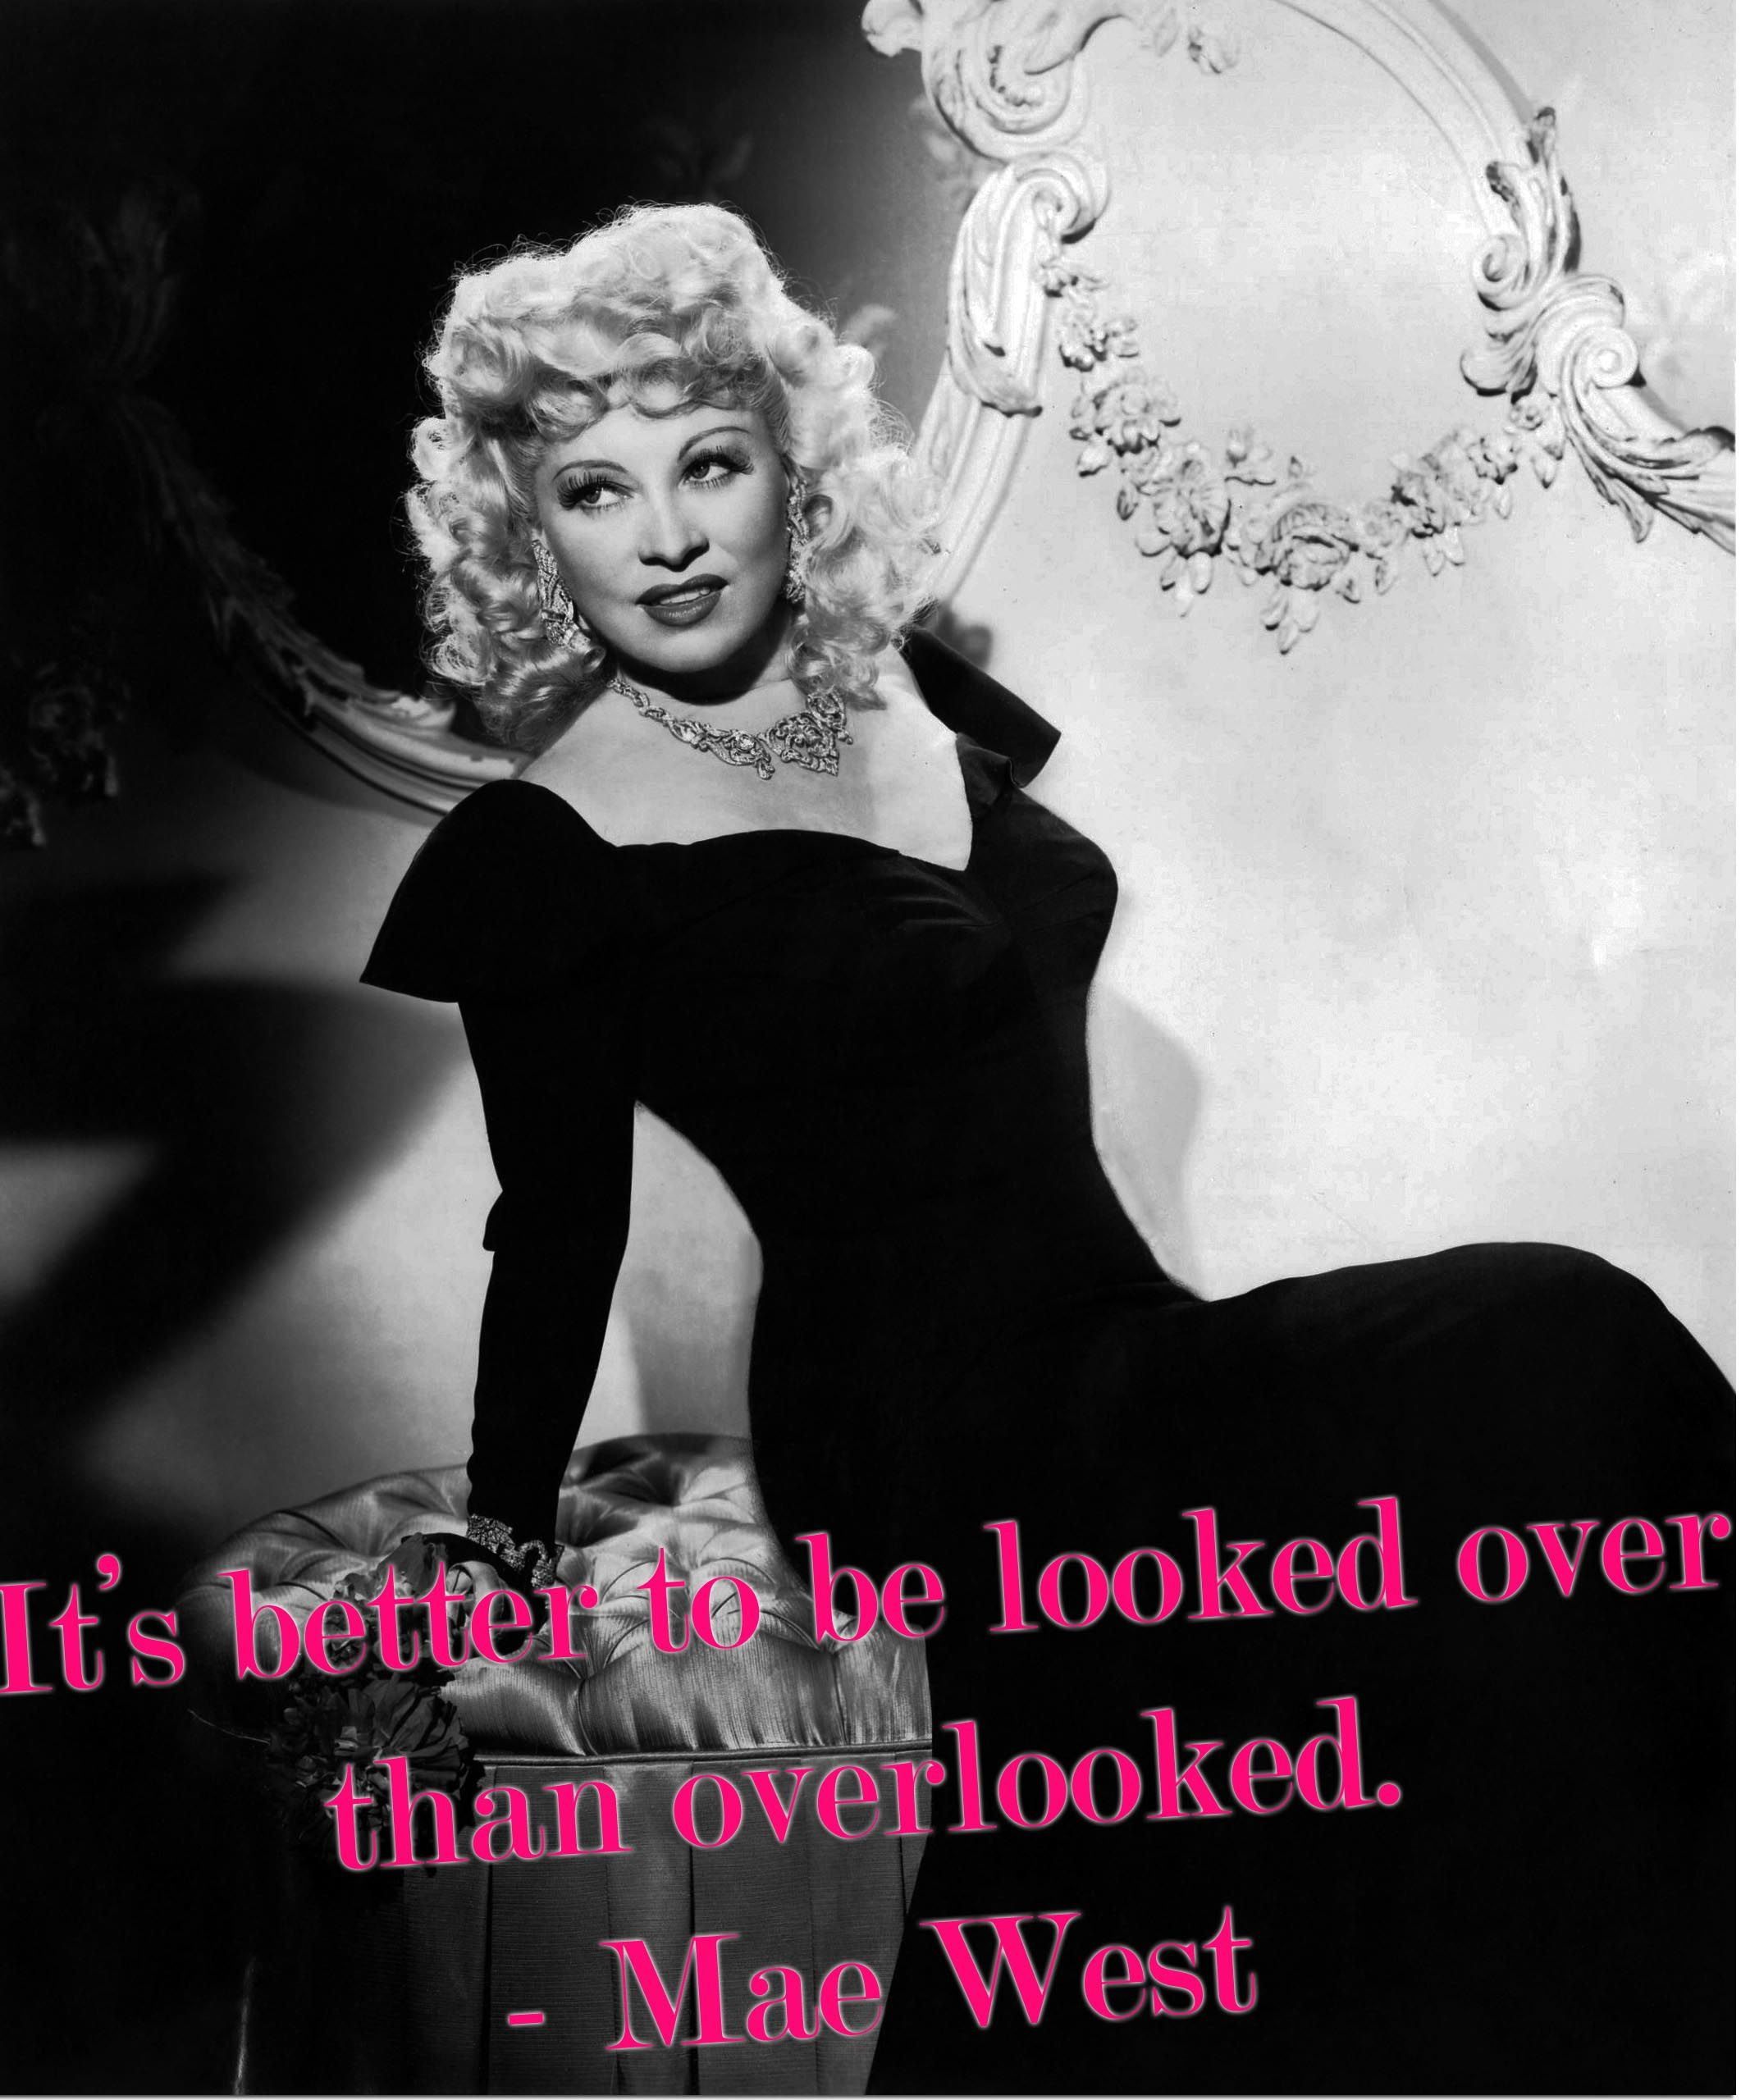 mae west quote - photo #1